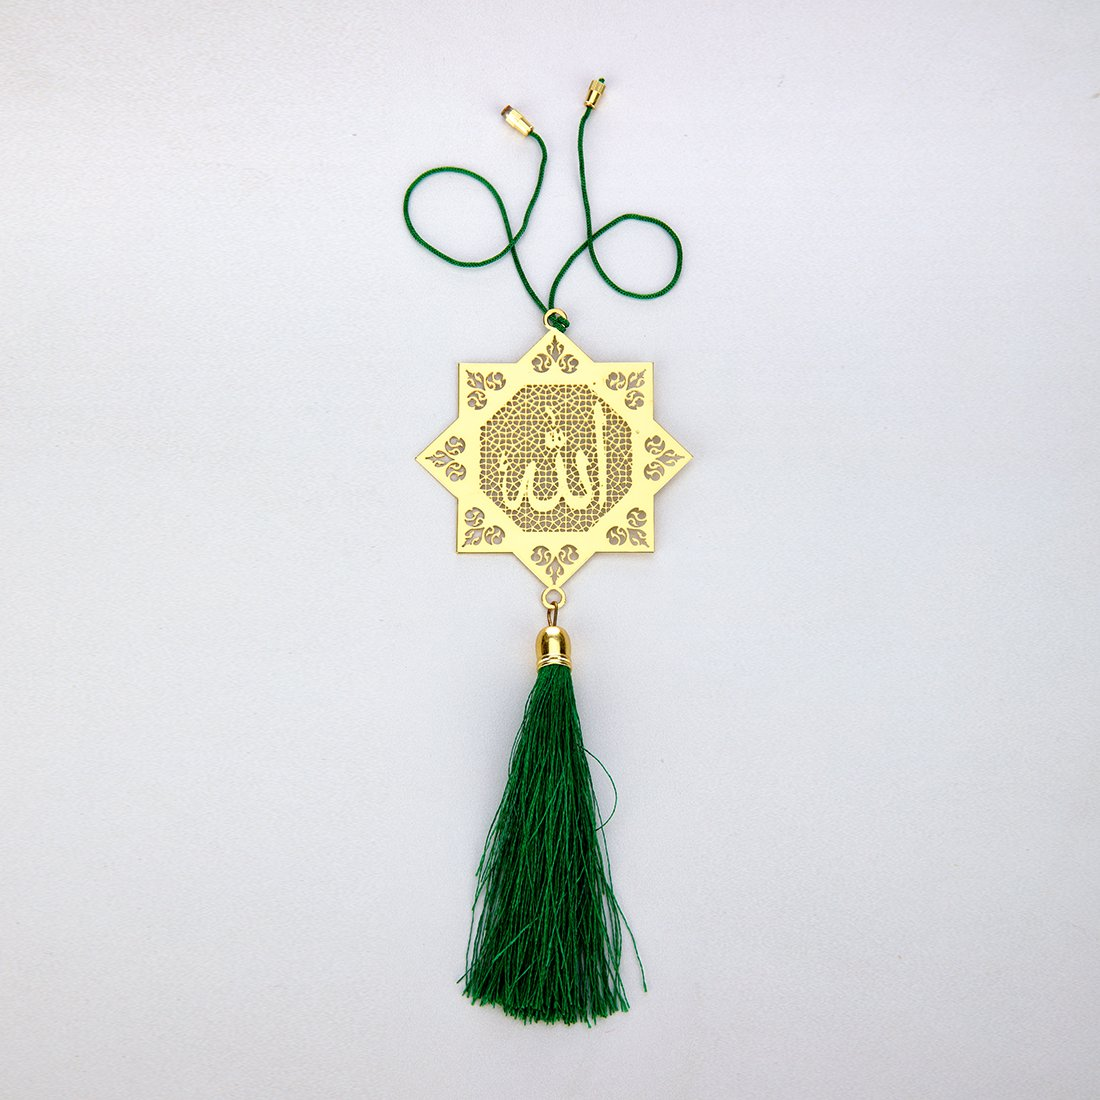 ADORAA Islamic Muslim Allah - Rear View Mirror Car Hanging Ornament/Perfect Car Charm Pendant/Amulet - Accessories for Car Dé cor in Brass for Divine Blessings & Safety/Protection Transcending Horizons Pvt Ltd